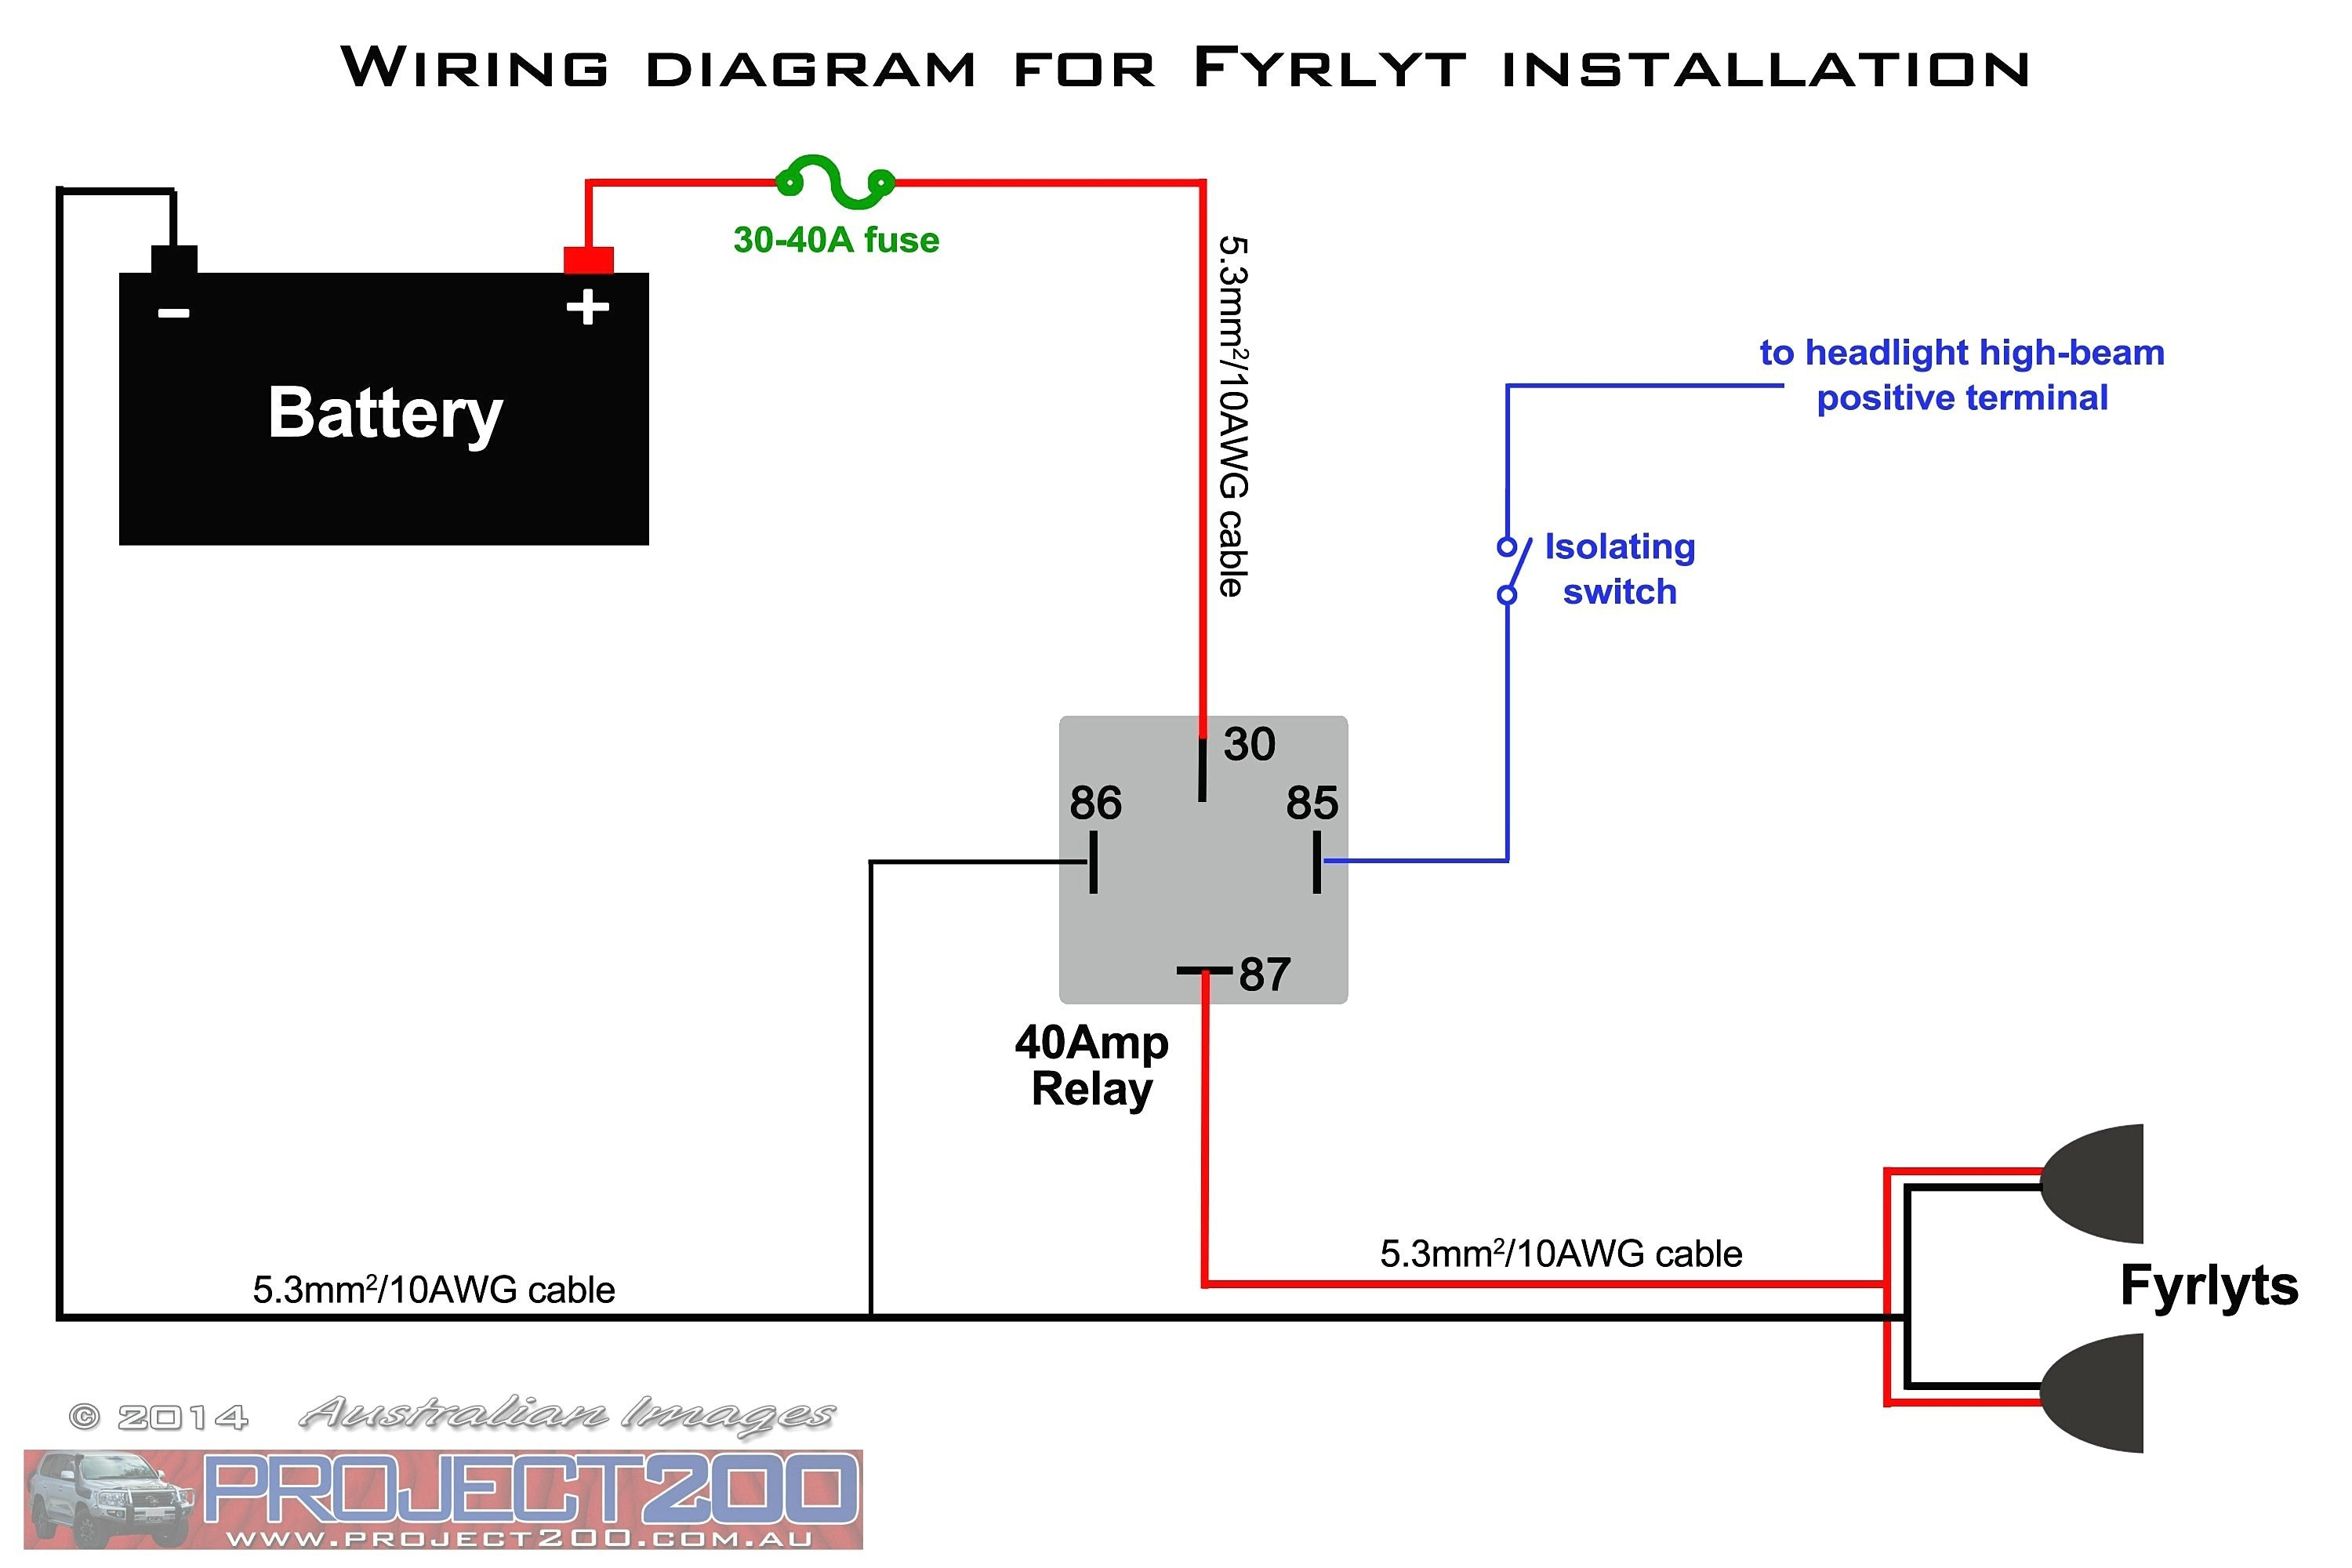 rib relay wiring diagram Download-Wiring Diagram for Rib Relay Valid Wiring Diagram with Relay & Bosch Relay Wiring Diagram 10-e